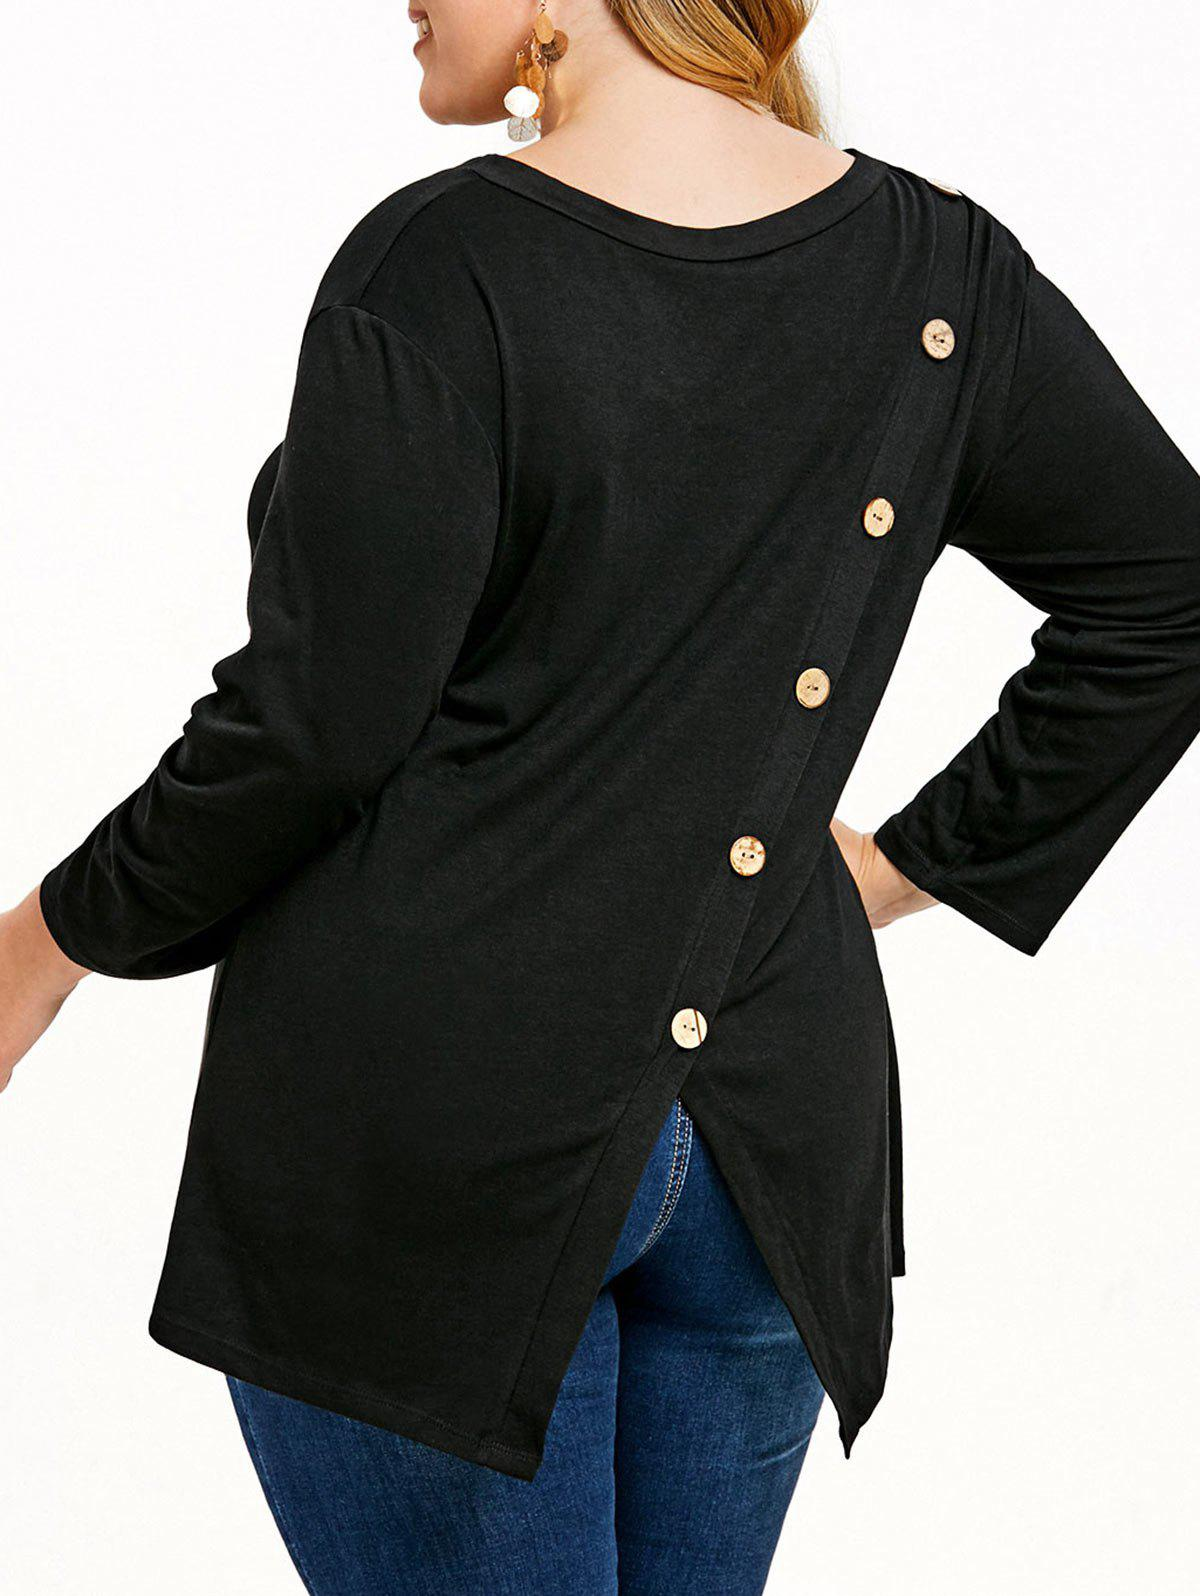 Discount Contrasting Buttons Plus Size Tunic Tee